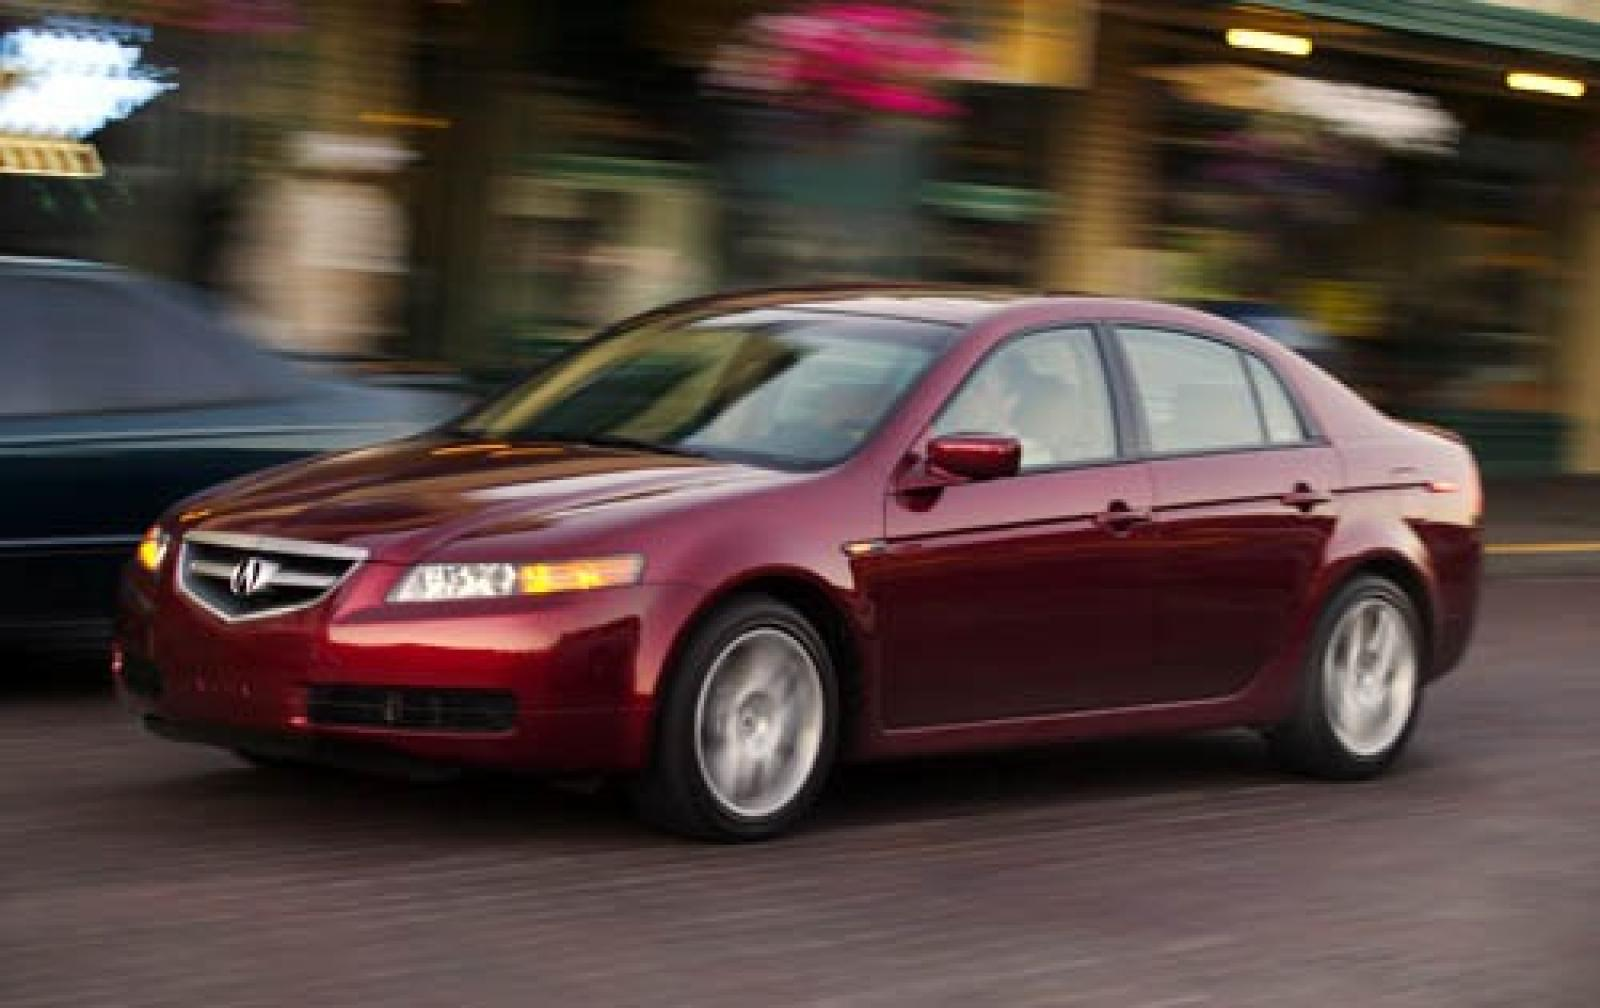 2005 acura tl information and photos zombiedrive. Black Bedroom Furniture Sets. Home Design Ideas